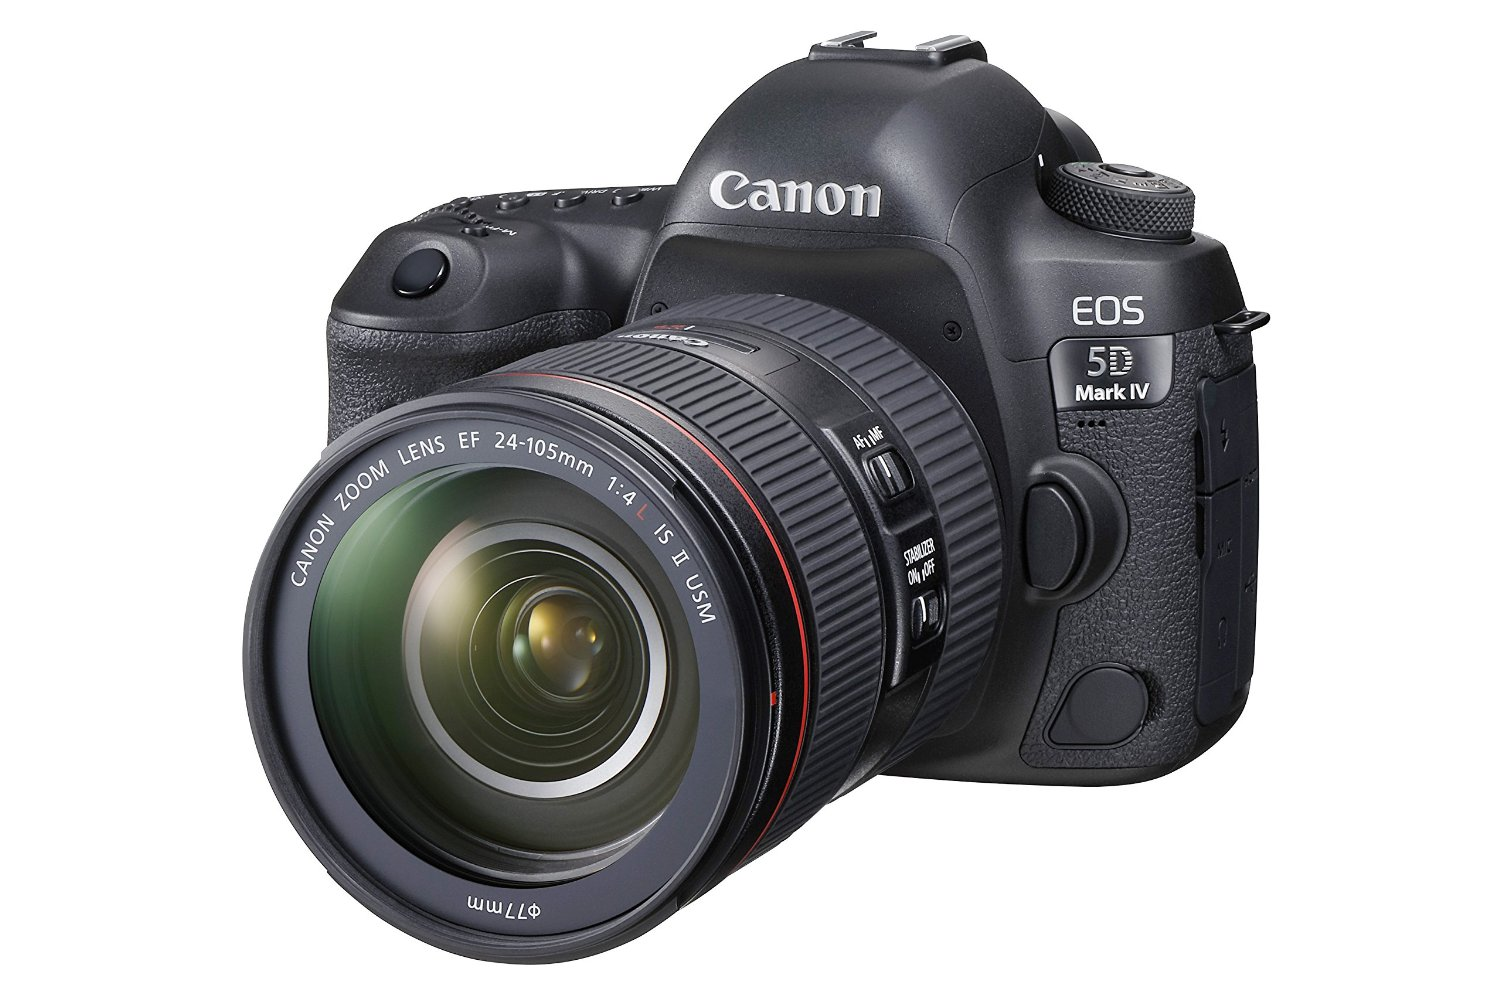 Canon EOS 5D mark IV w 24-105mm F4L lens II